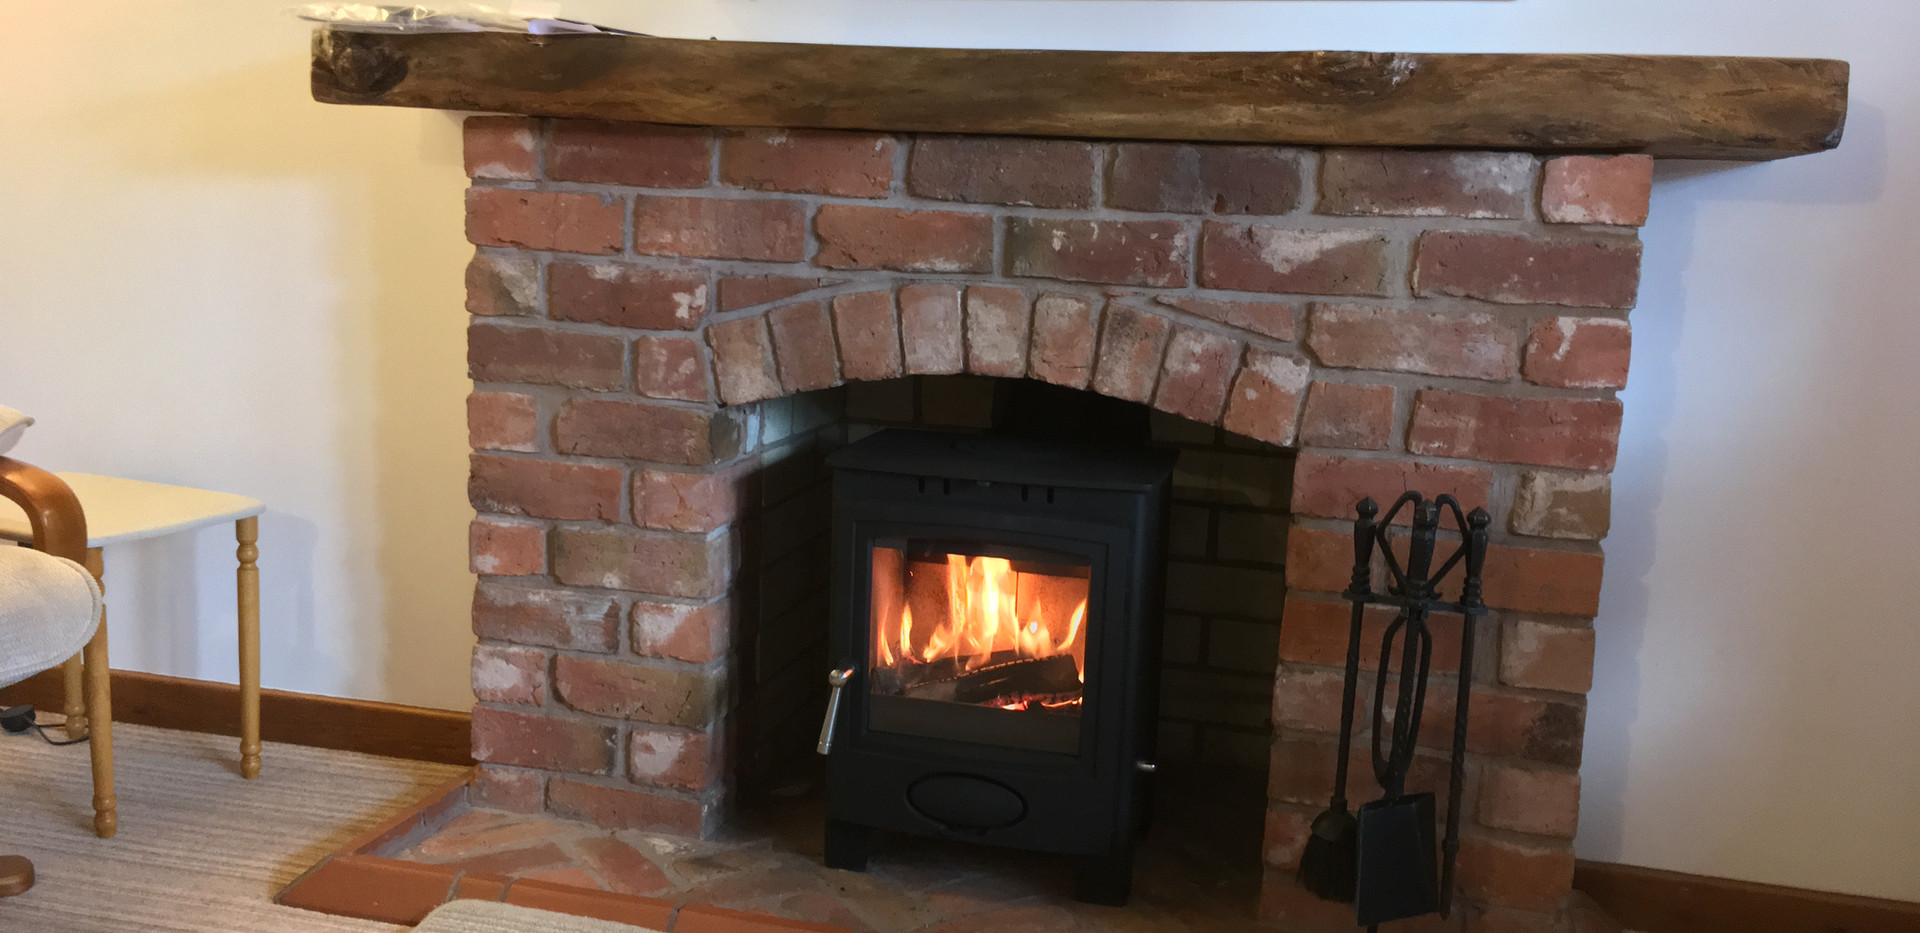 Stove to brick fireplace